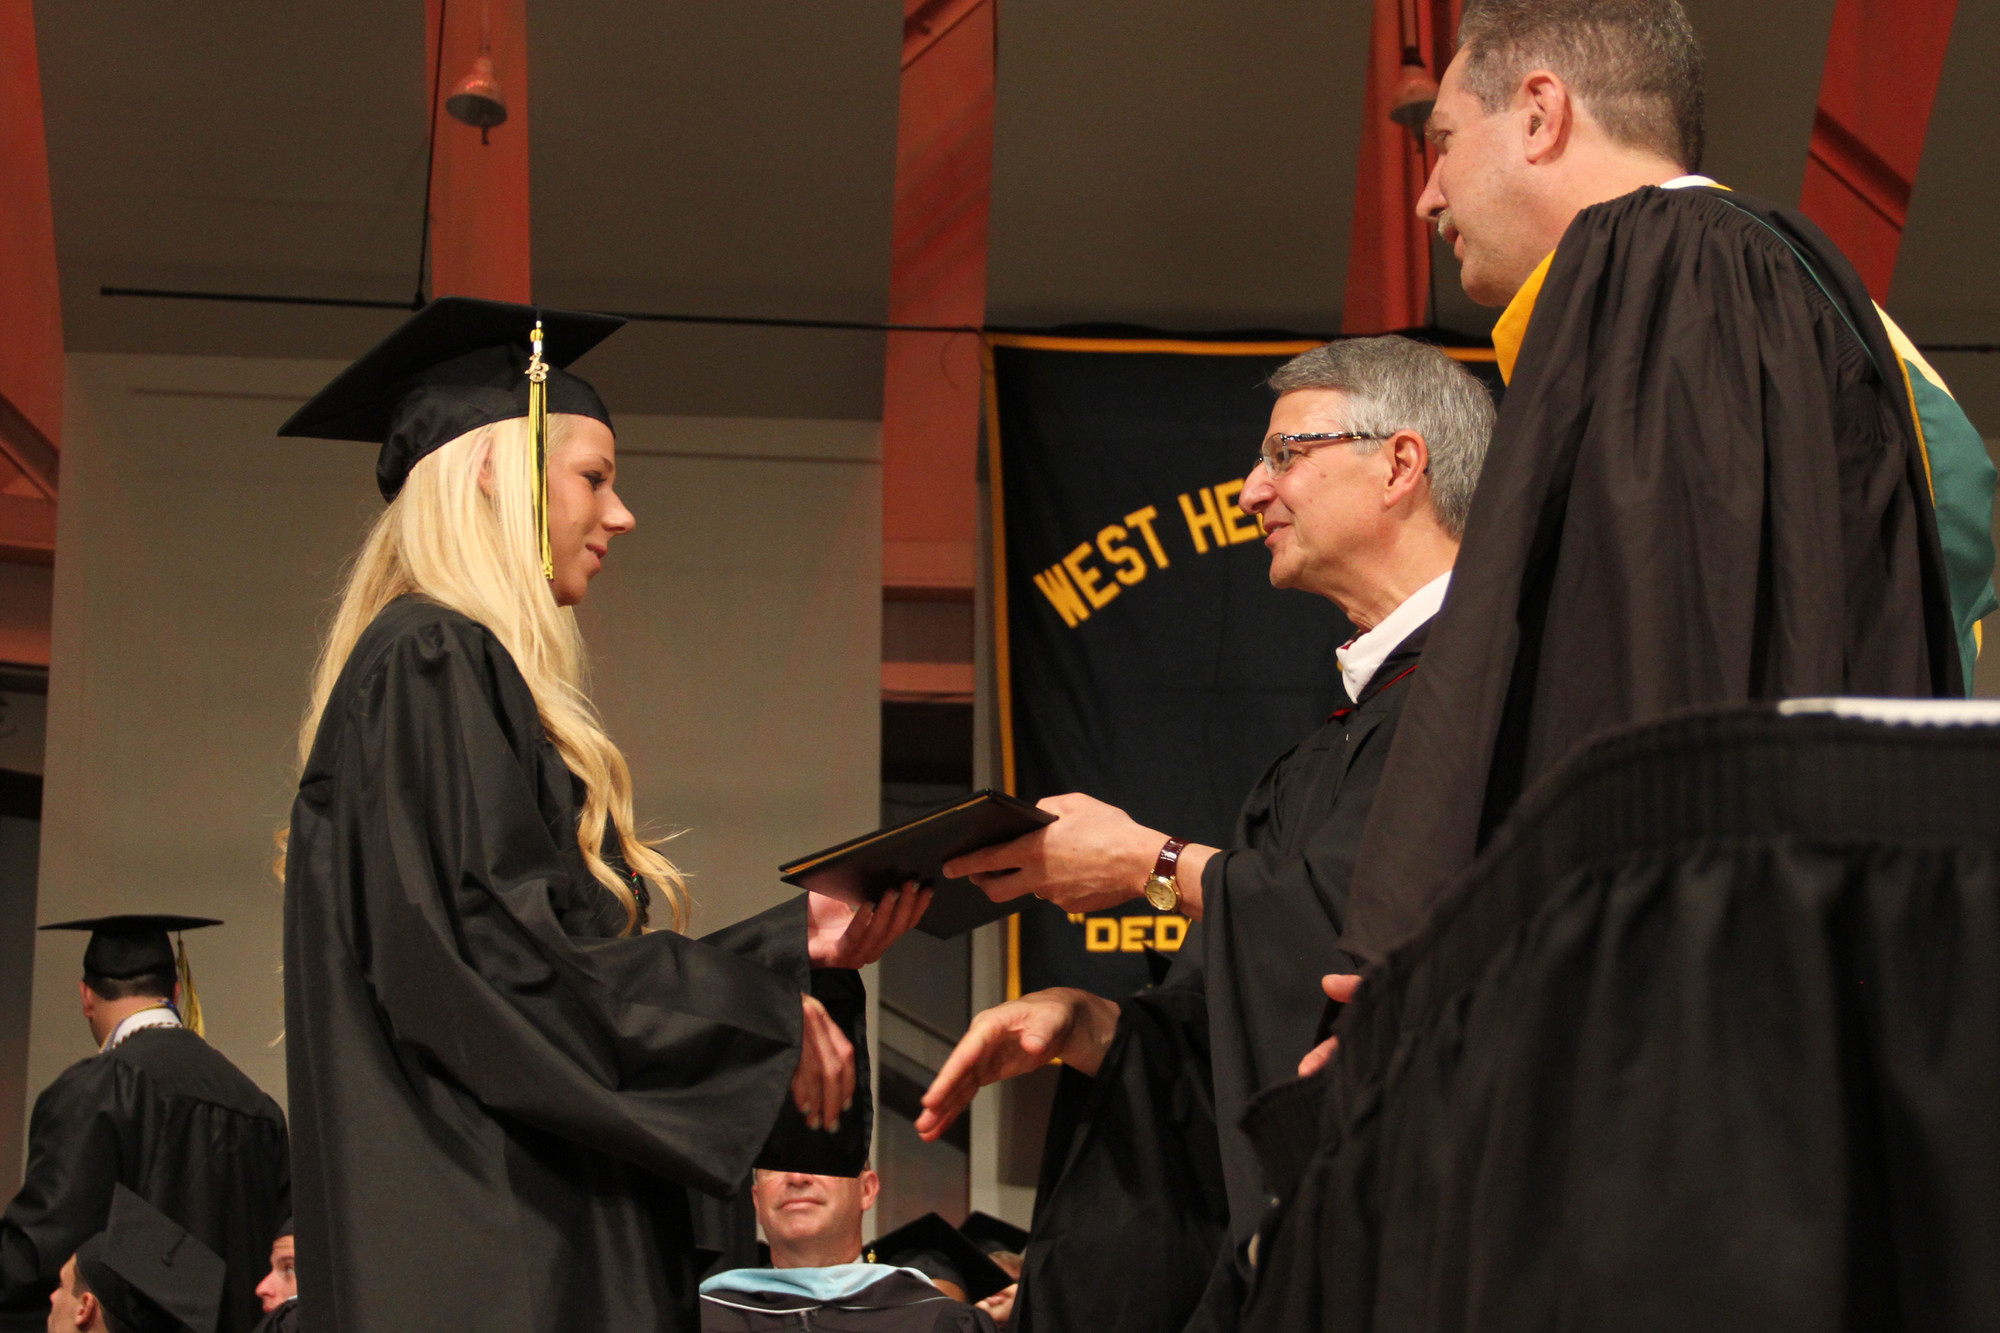 Kelly Feeley greeted Superintendent John Hogan as she received her diploma.